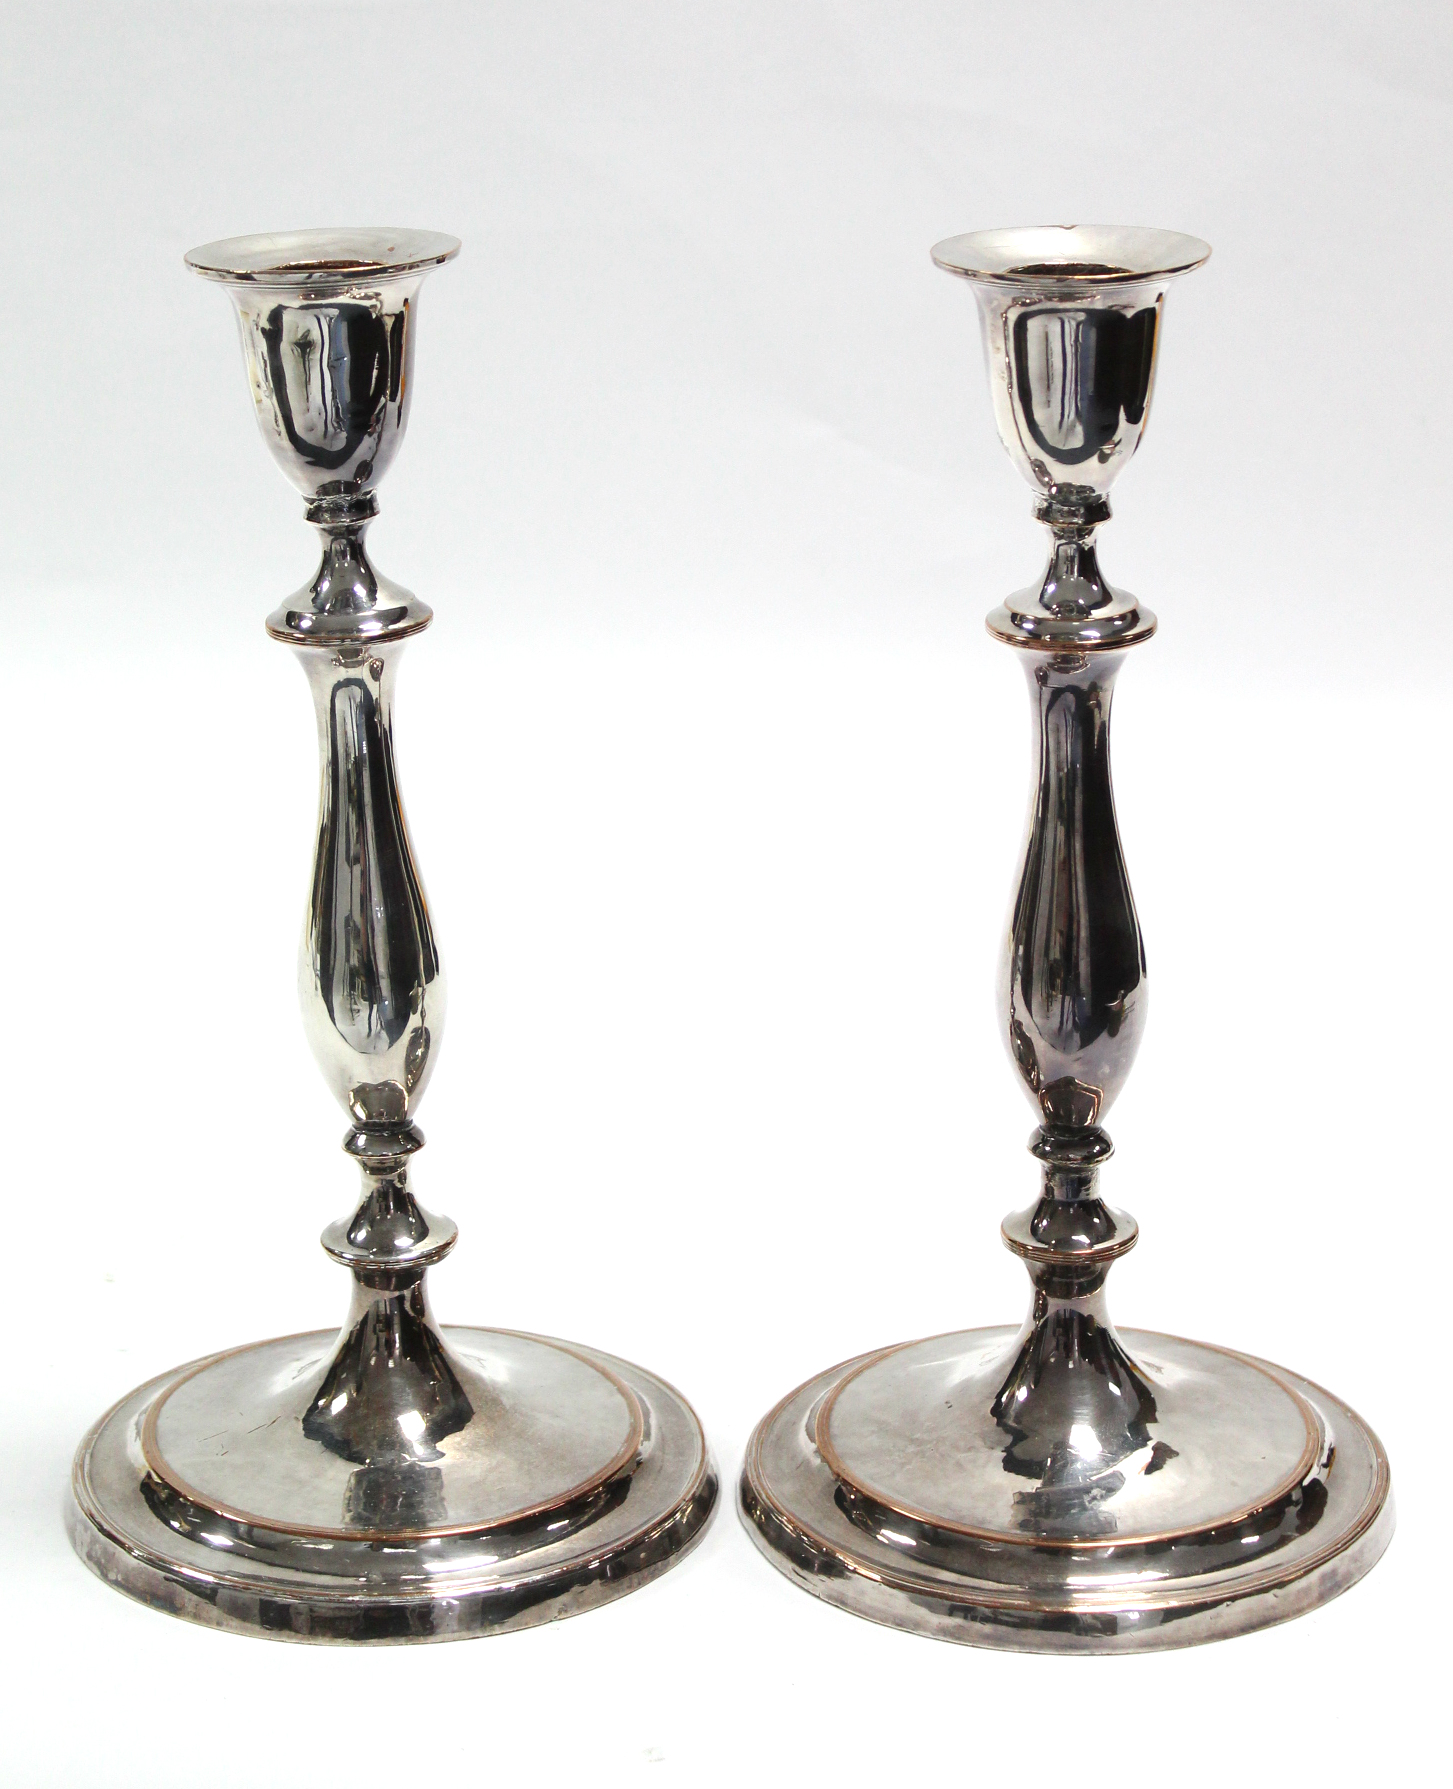 A pair of late 18th century Sheffield candlesticks with vase-shaped nozzles, slender baluster